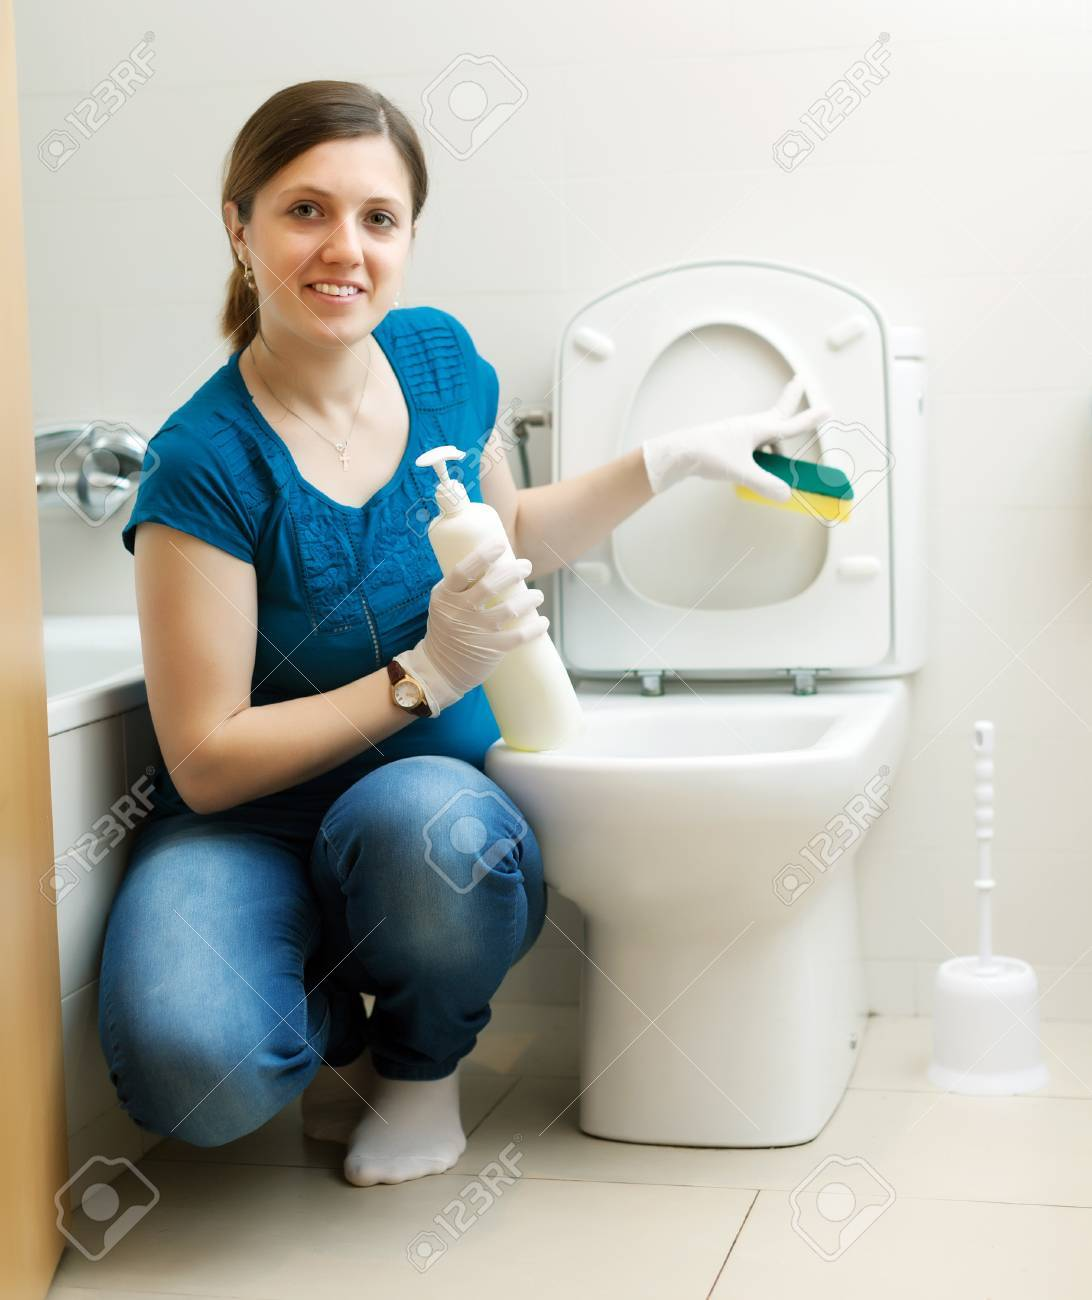 Smiling housewife cleaning toilet bowl with sponge in bathroom Stock Photo - 21111043